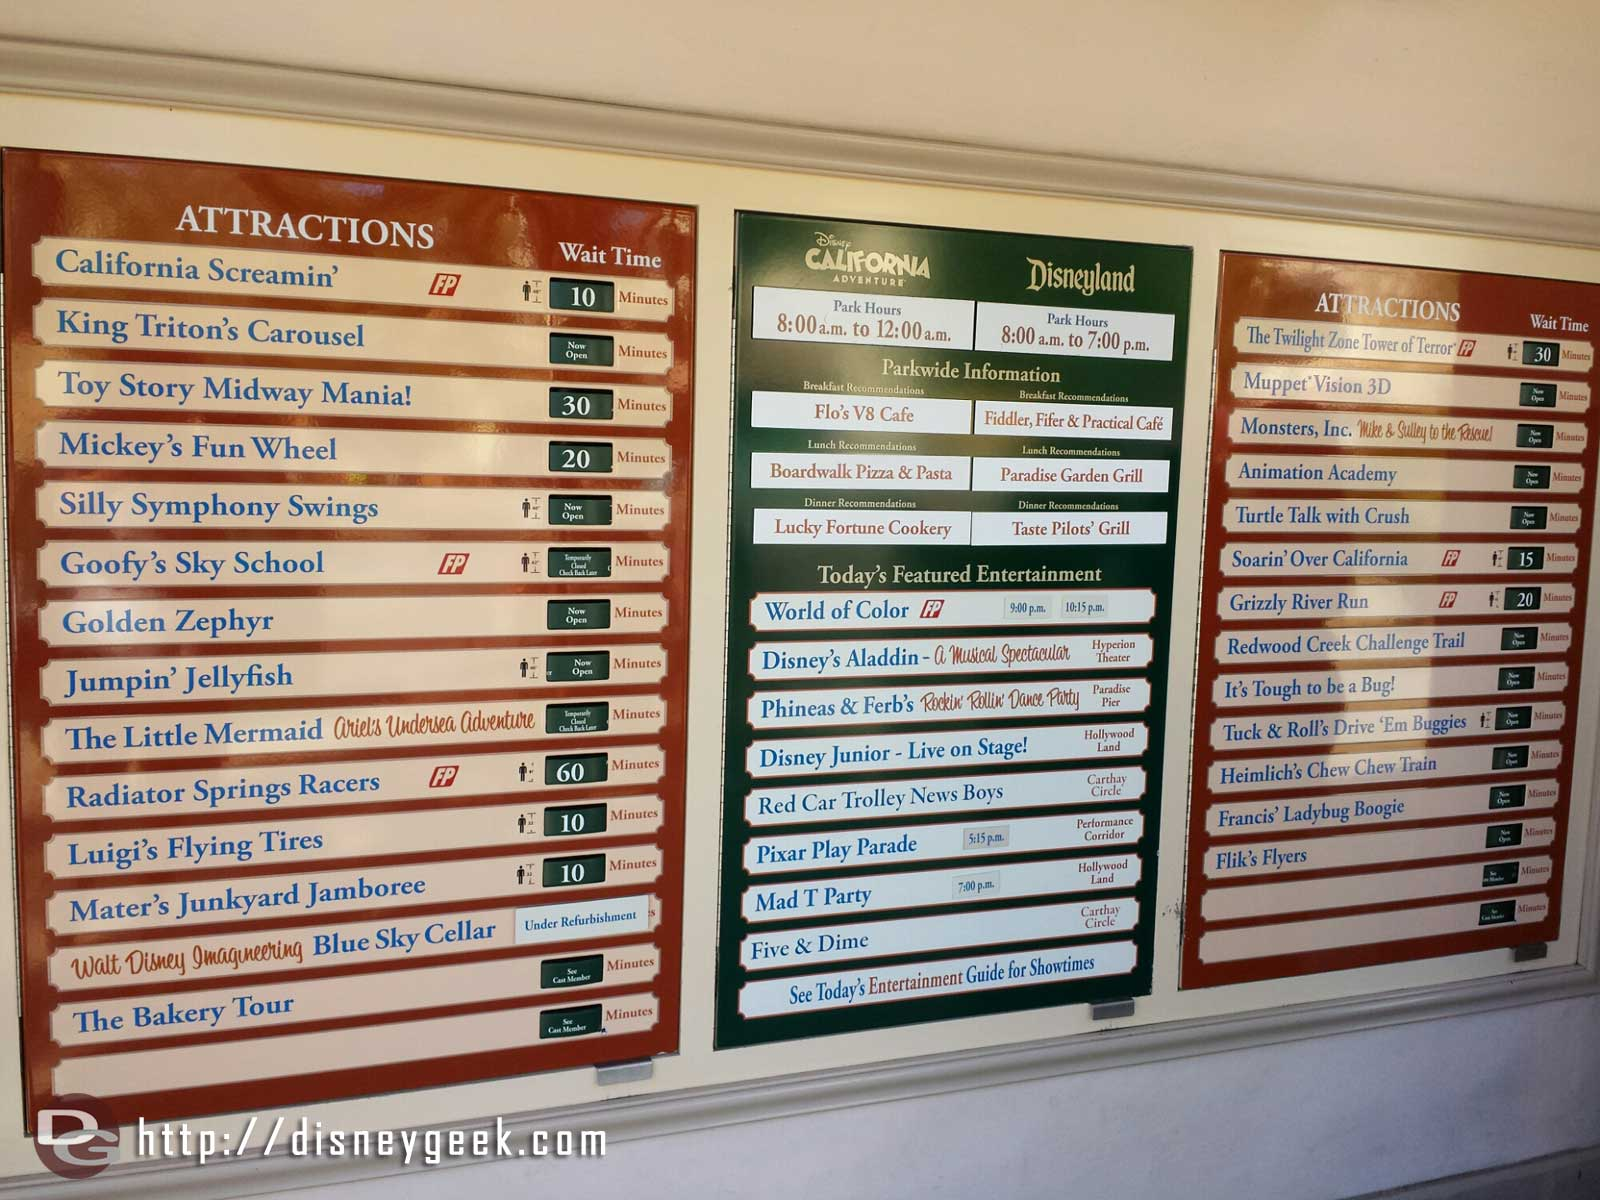 Current DCA wait times as of 11:22am